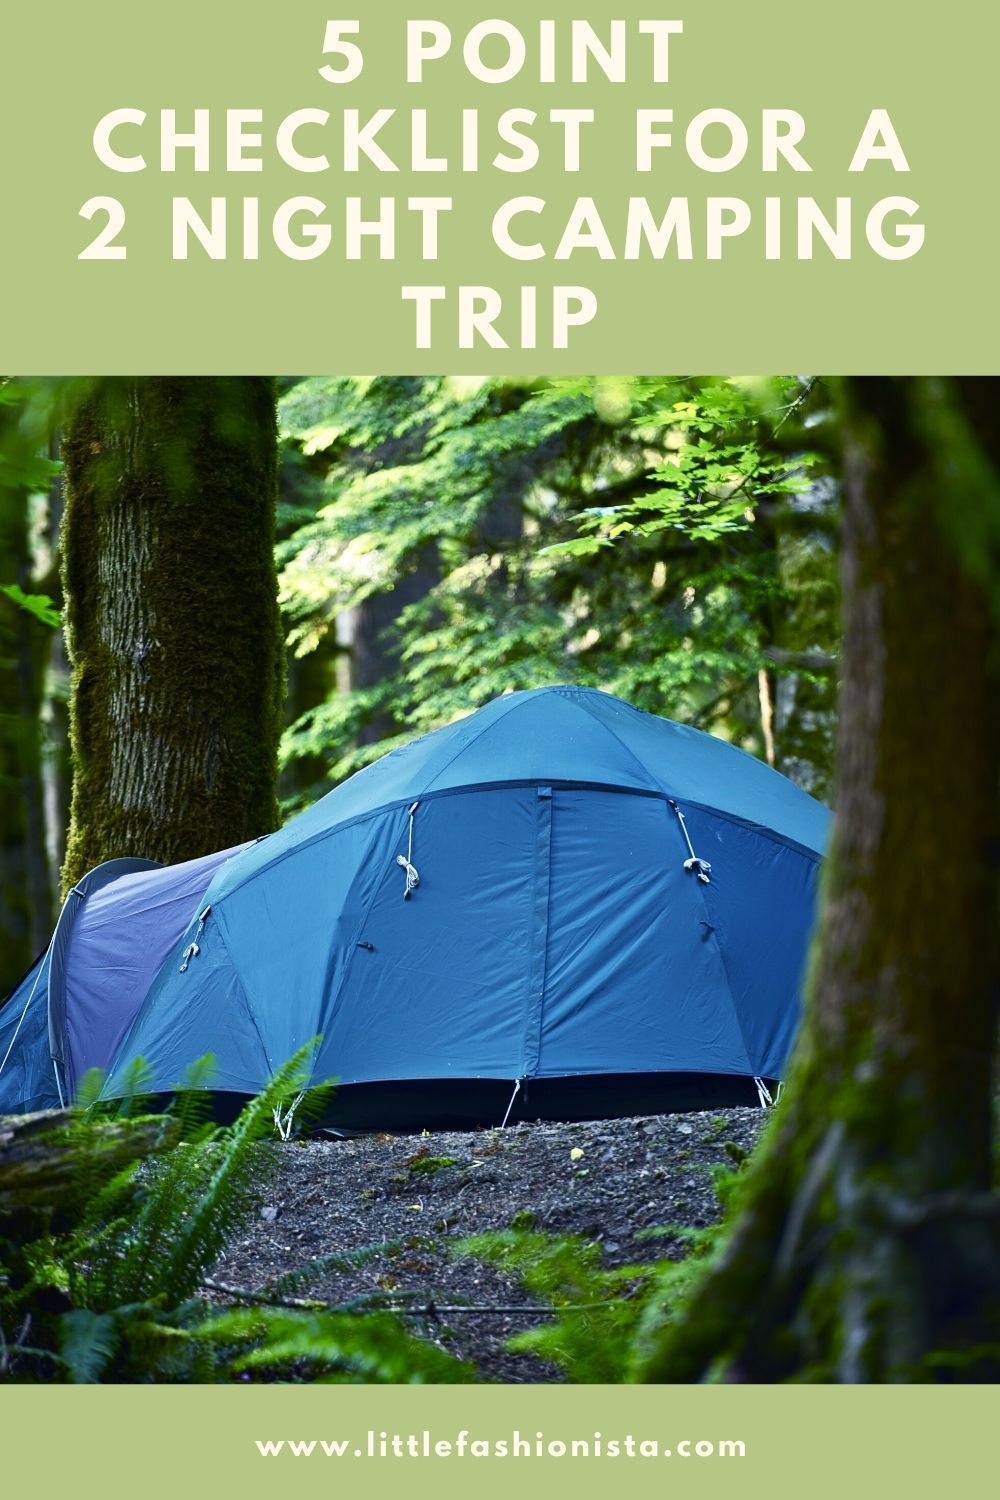 5 Point Checklist For A 2 Night Camping Trip In 2020 Camping Trips Camping Trip